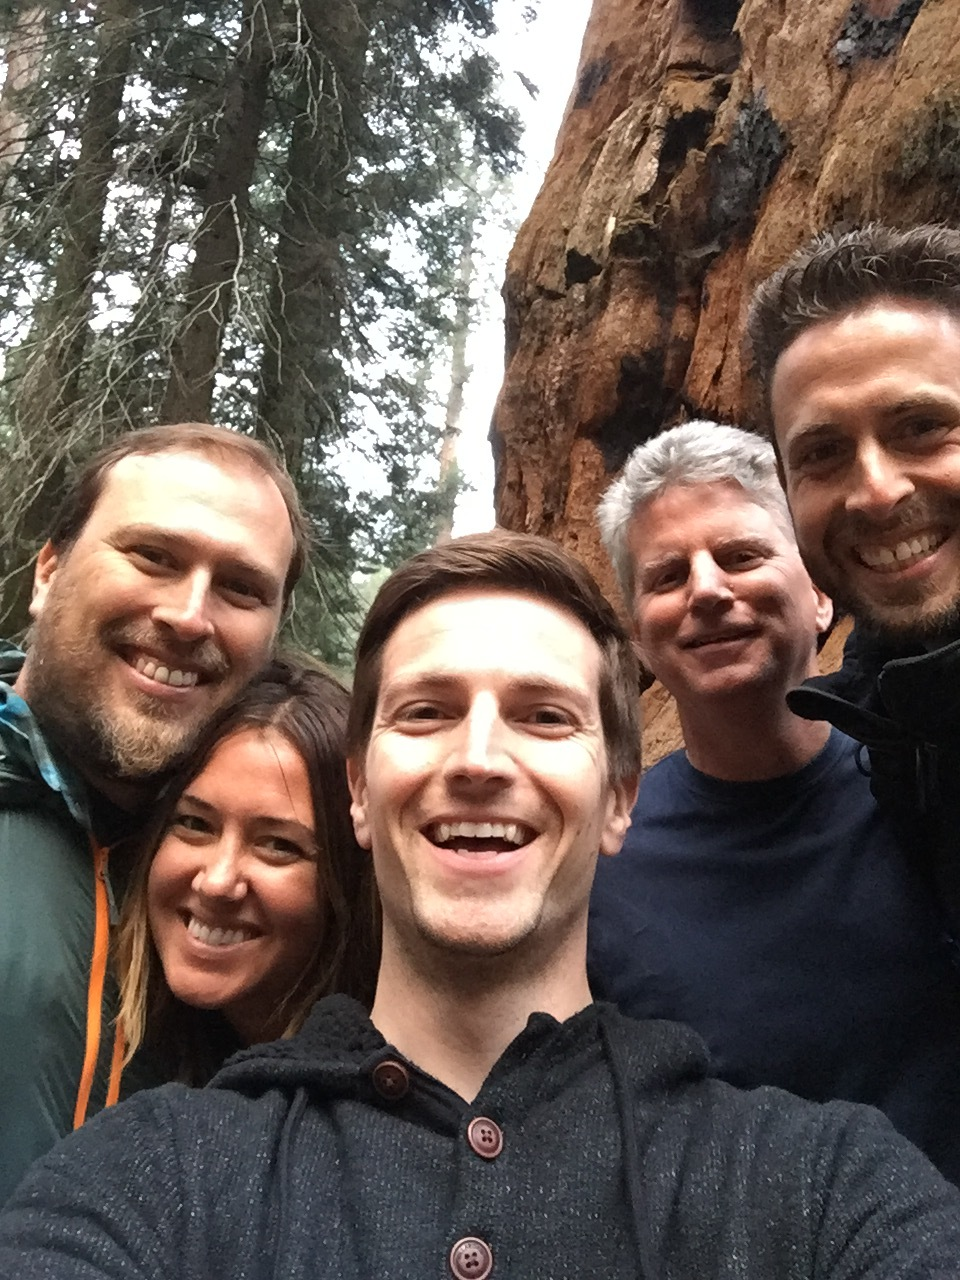 The Good Morning America A-Team at Sequoia National Park in California.